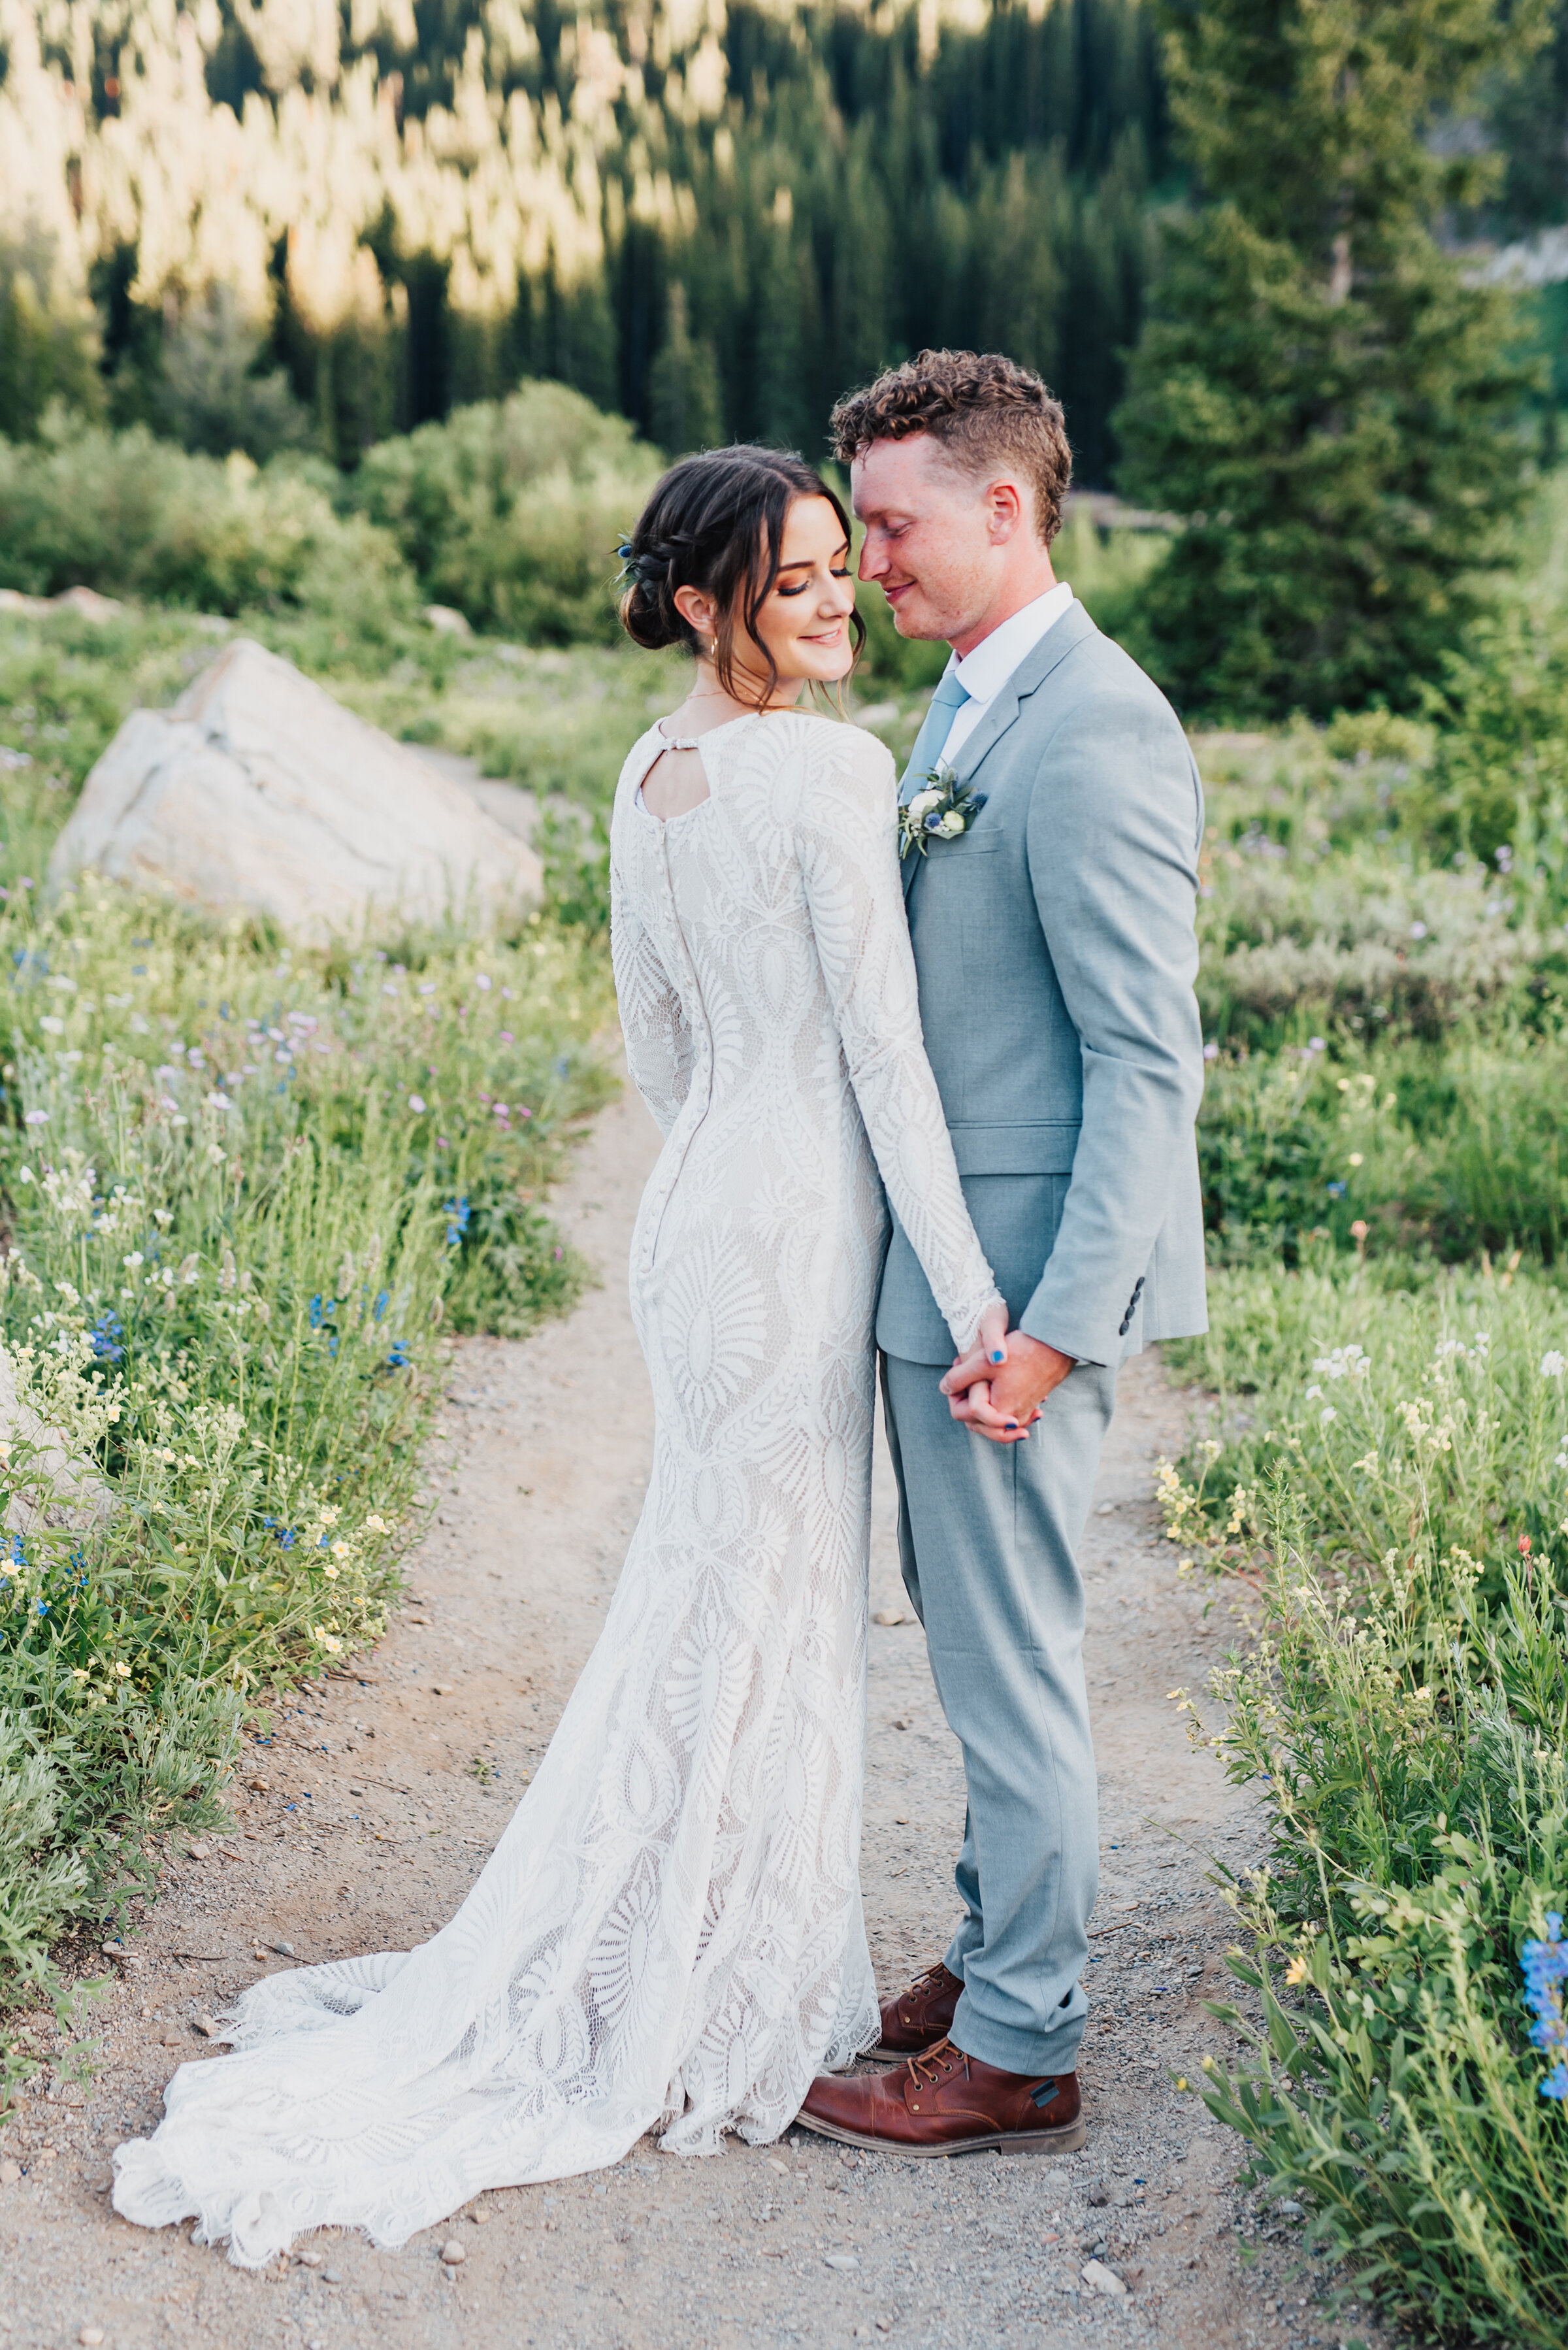 Charming bride and groom in love surrounded by wild flowers up Logan canyon during this bridal session. Kristi Alyse photography Logan Utah wedding photographer forest nature dreamy formals Logan canyon Tony Grove scenic bridals Northern Utah photographer Utah brides bride and groom Cache Valley #kristialysephotography #loganutahphotographer #tonygrove #logancanyon #utahweddingphotographer #bridals #formals #wildflowers #northernutah #utahbrides